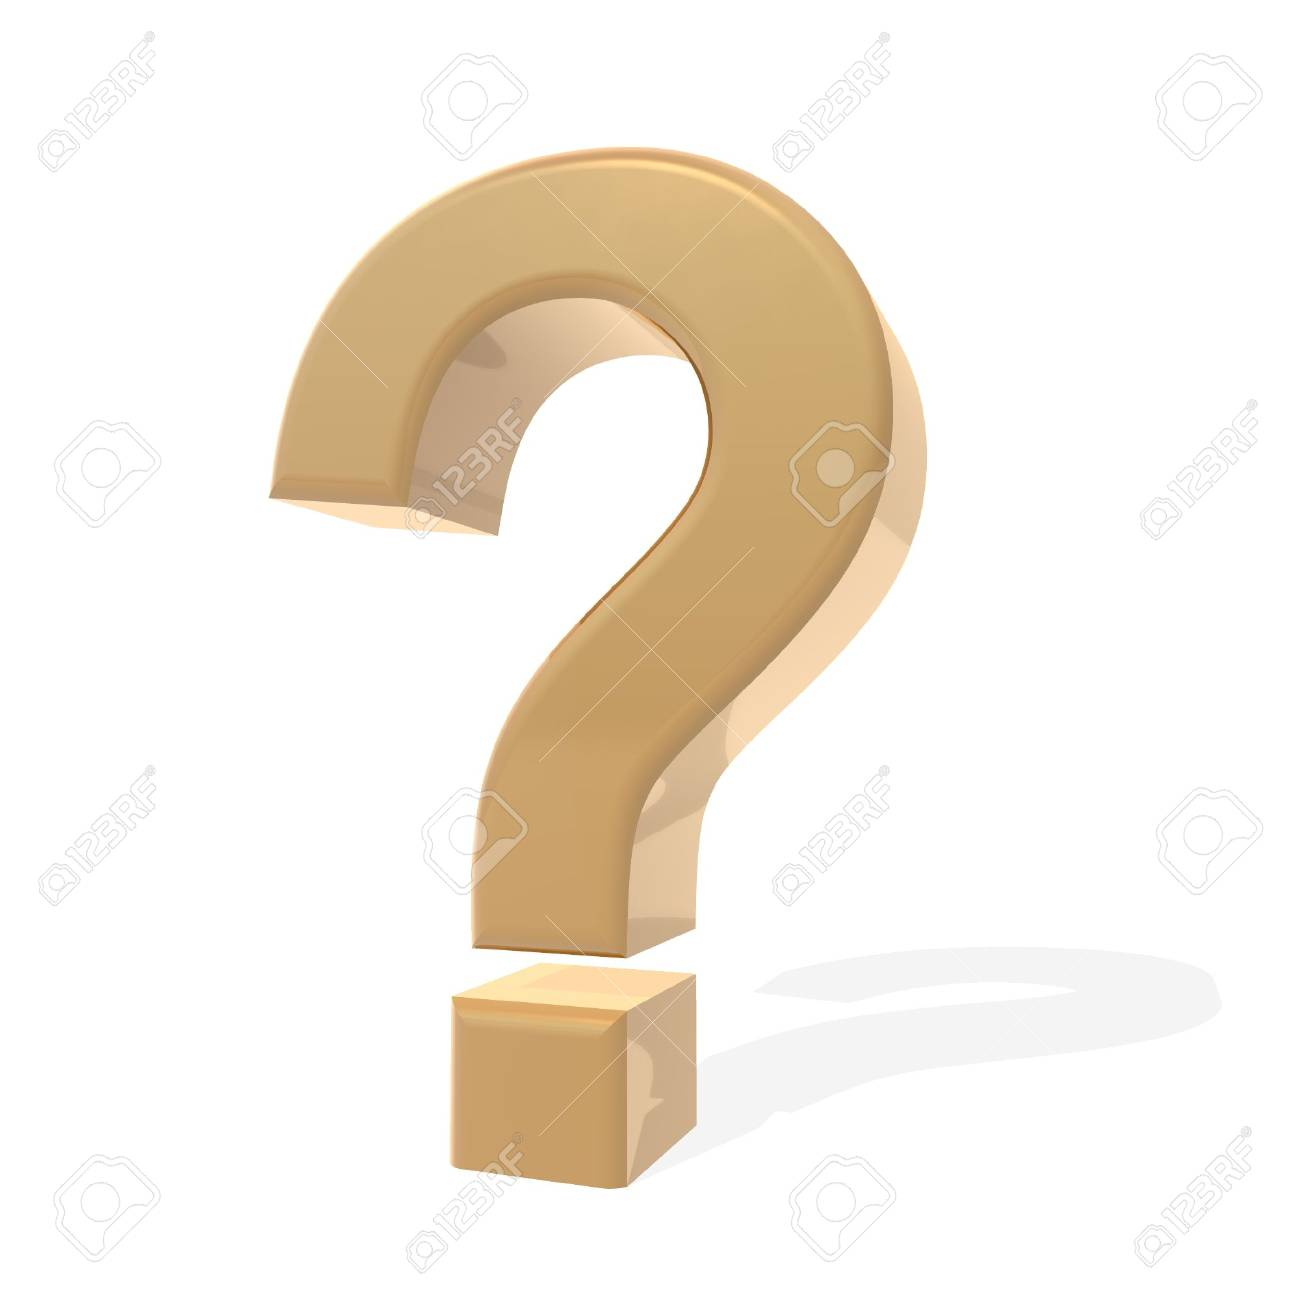 a 3d rendering of a question mark Stock Photo - 1884701